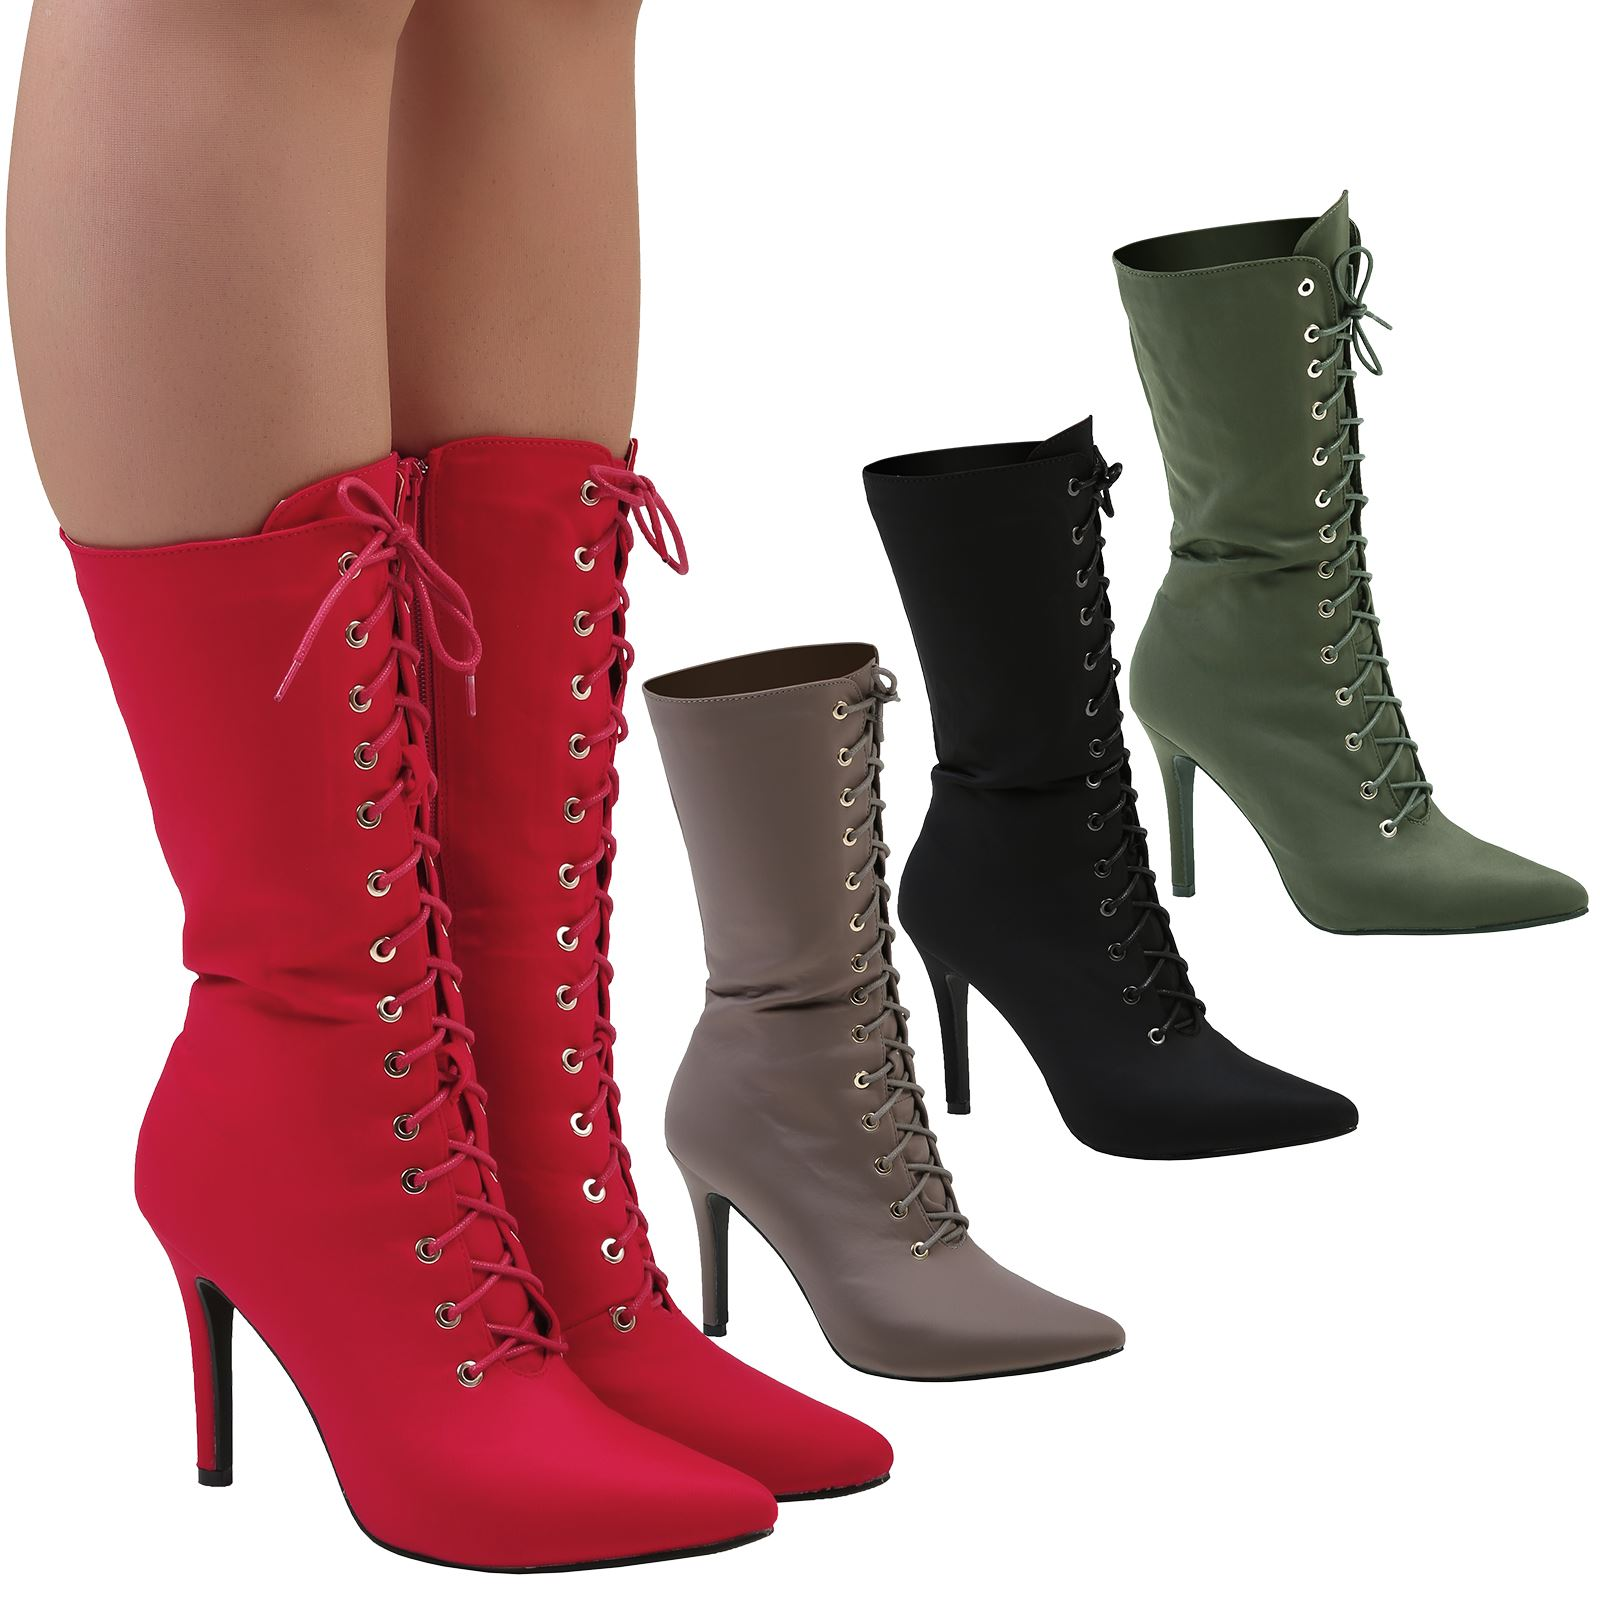 4ef77ad53be Details about Keri Womens High Stiletto Heels Zip Lace Up Mid Calf Boots  Ladies Shoes Size New